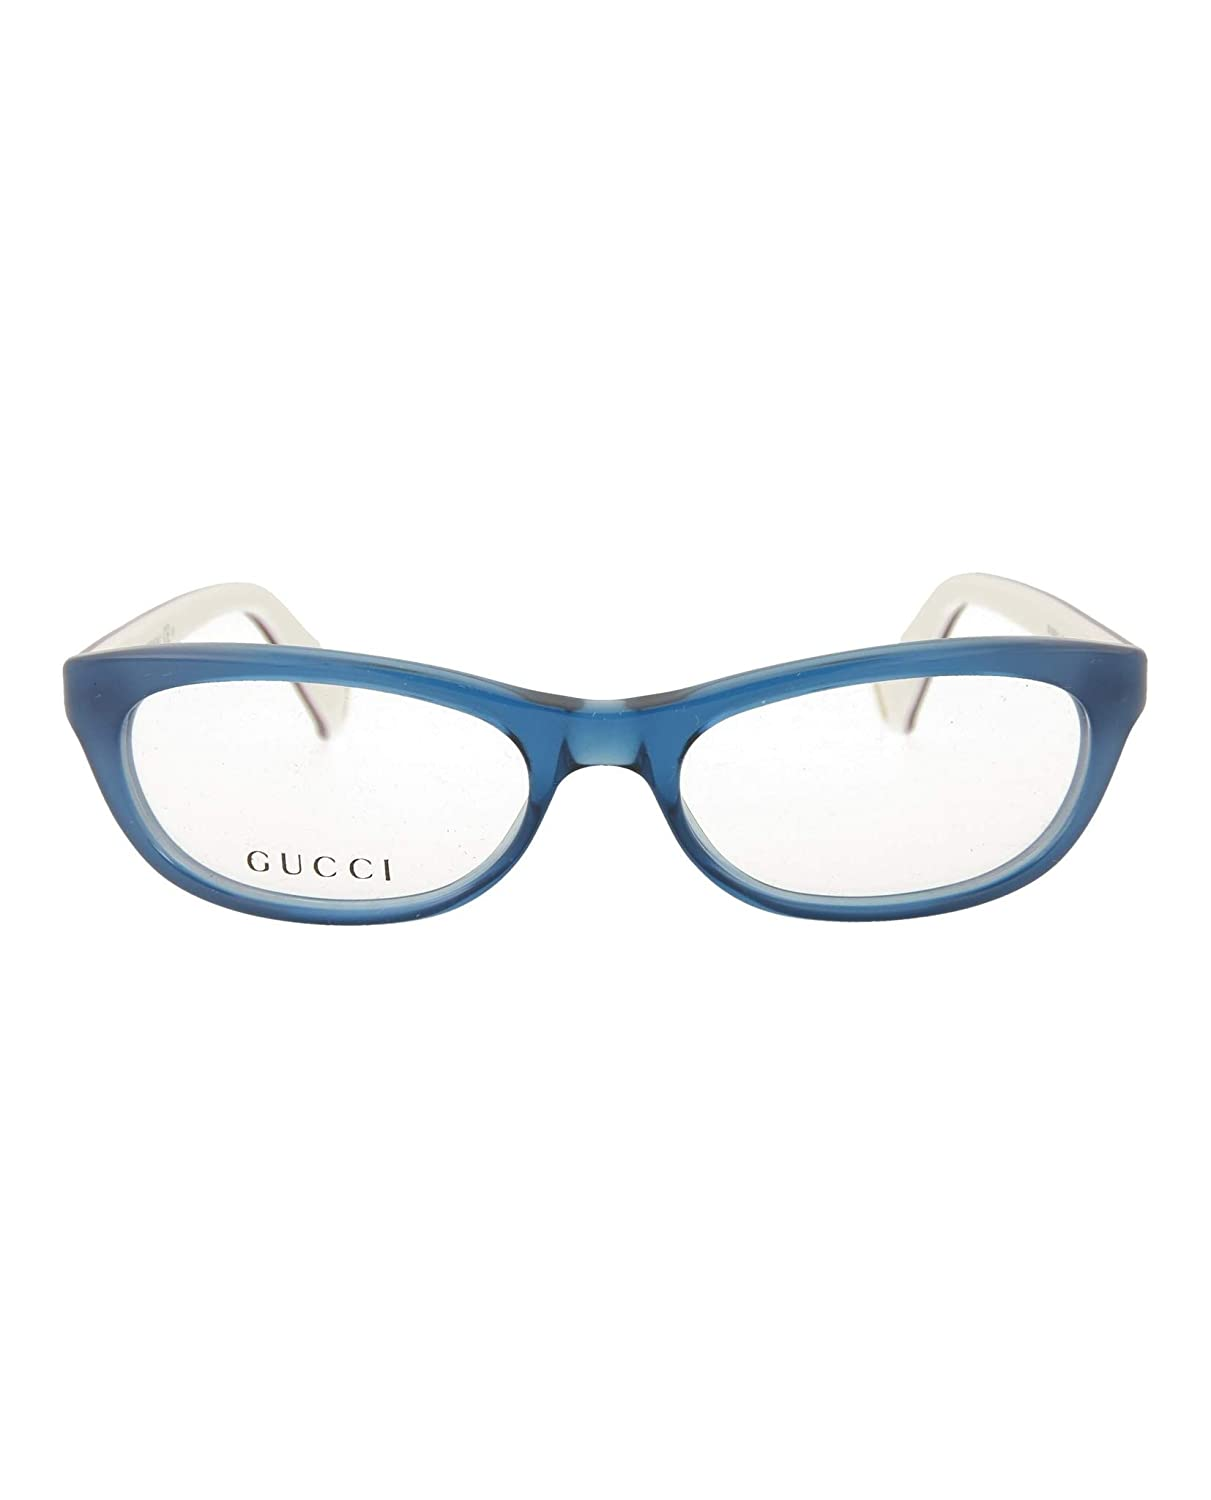 f247415bf5f Amazon.com  Gucci Kids Round Oval Optical Frames GG5007C-114231W6J-4615   Clothing